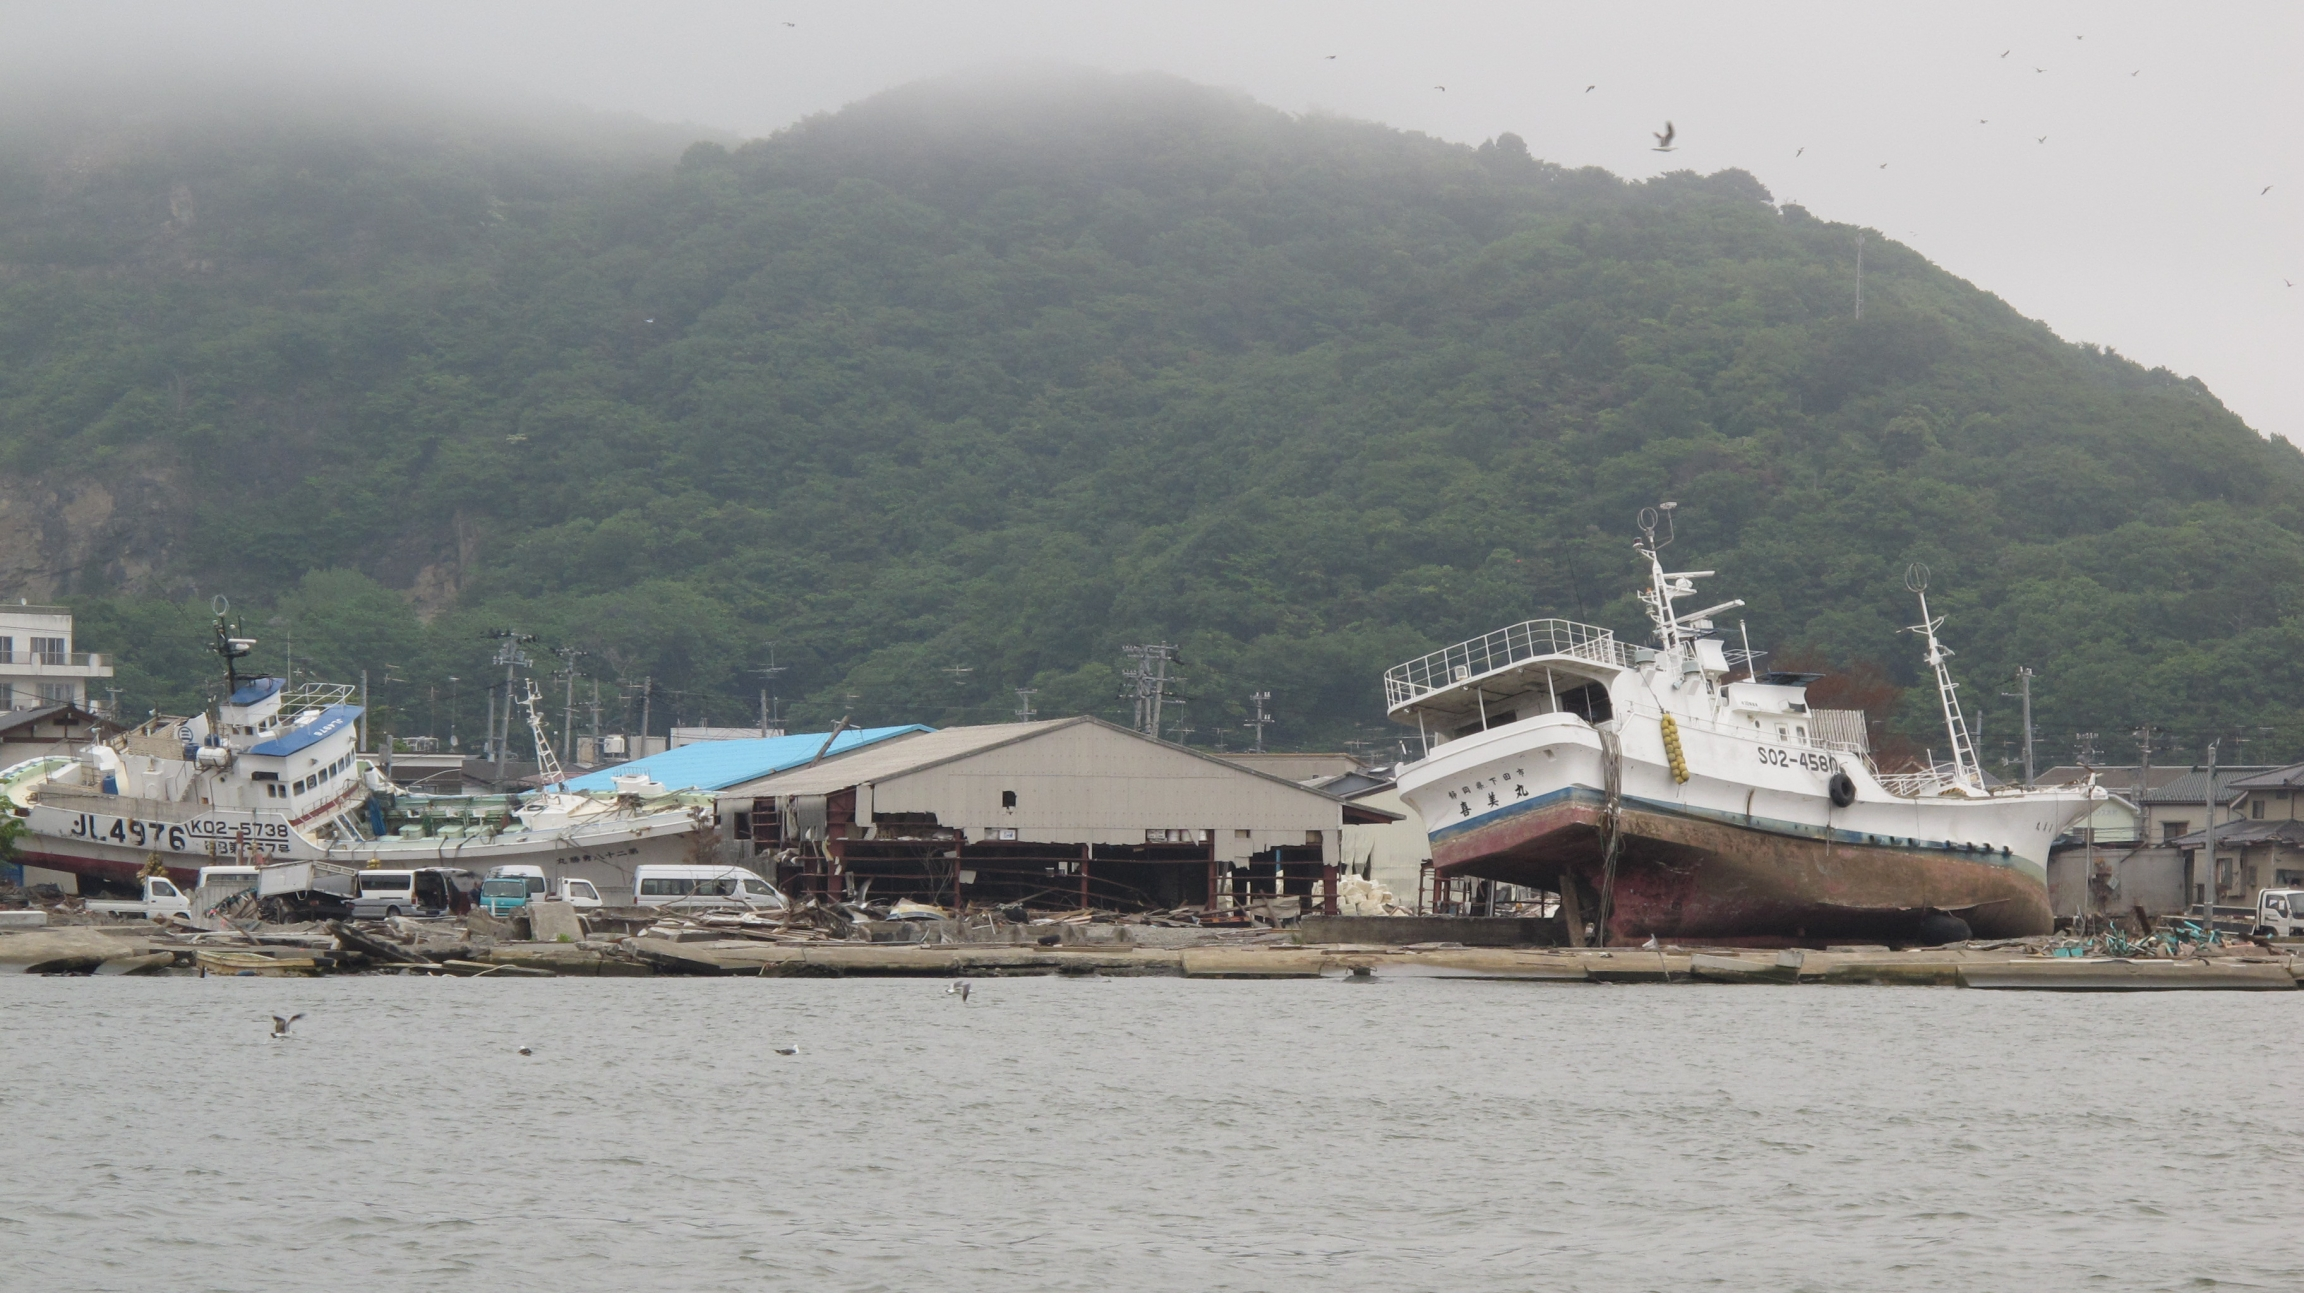 Several large boats are shown on their side and washed ashore following a tsunami as shown from across a body of water.